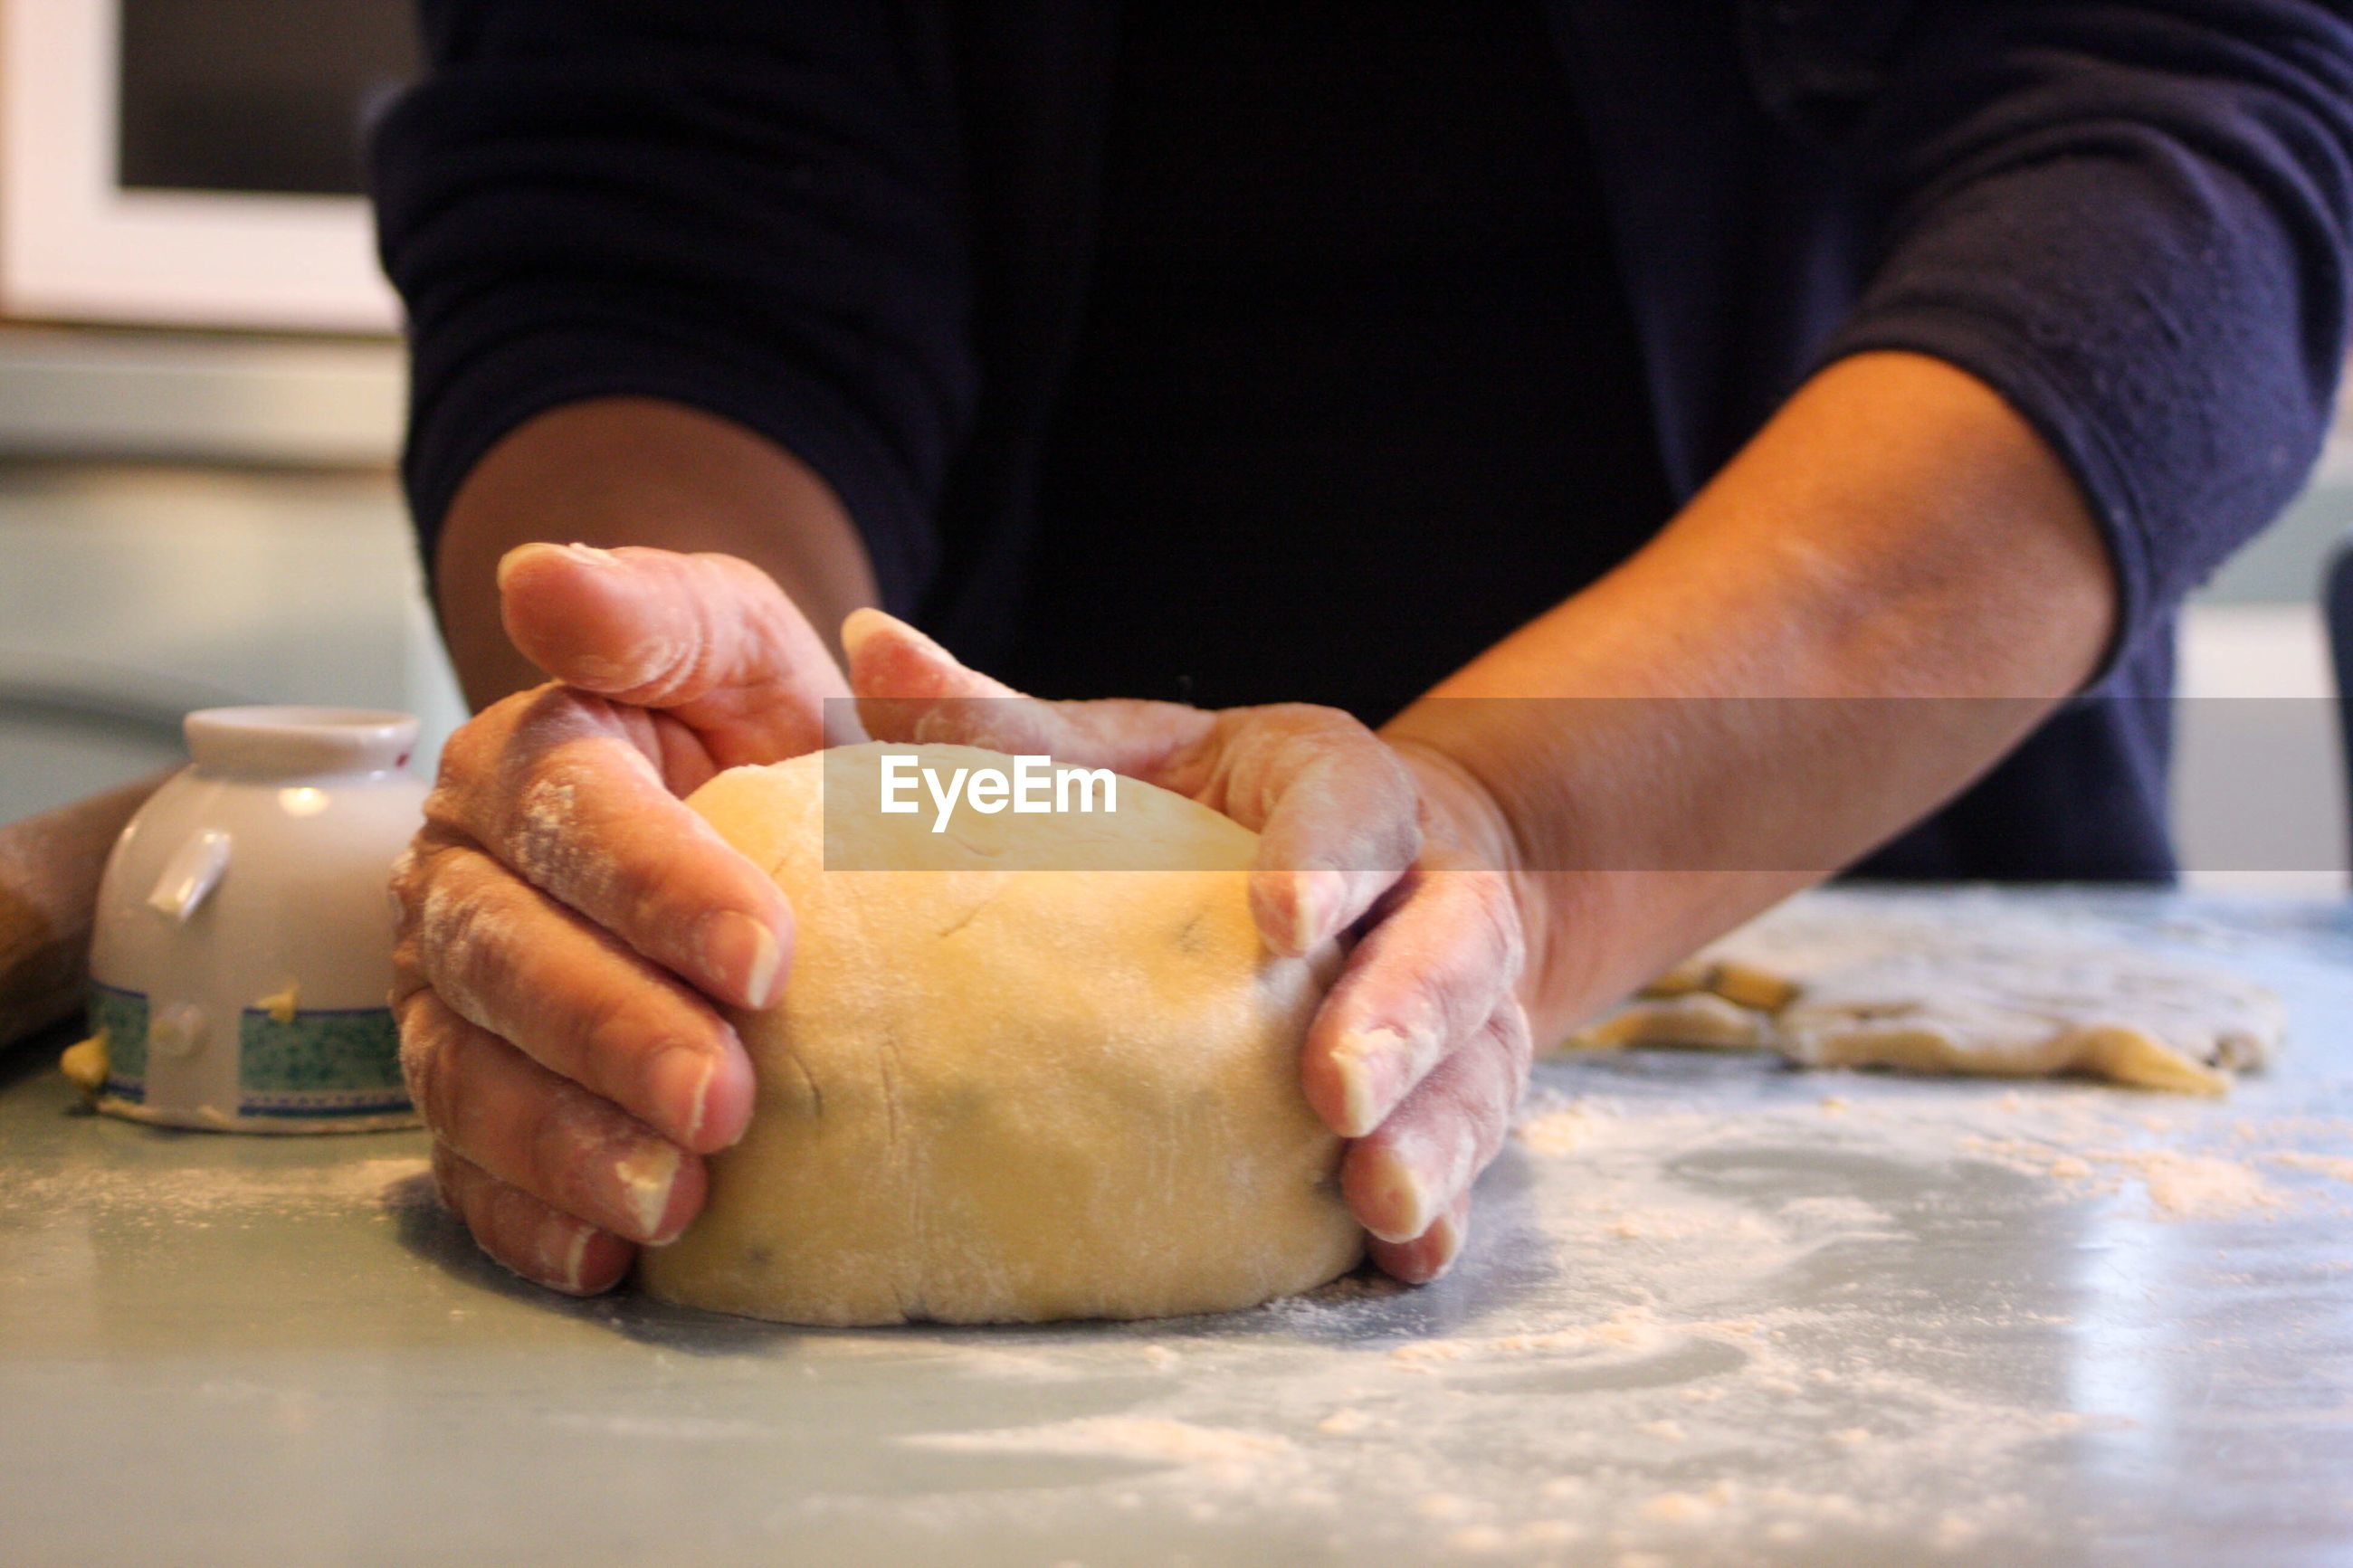 Midsection of woman kneading dough on table